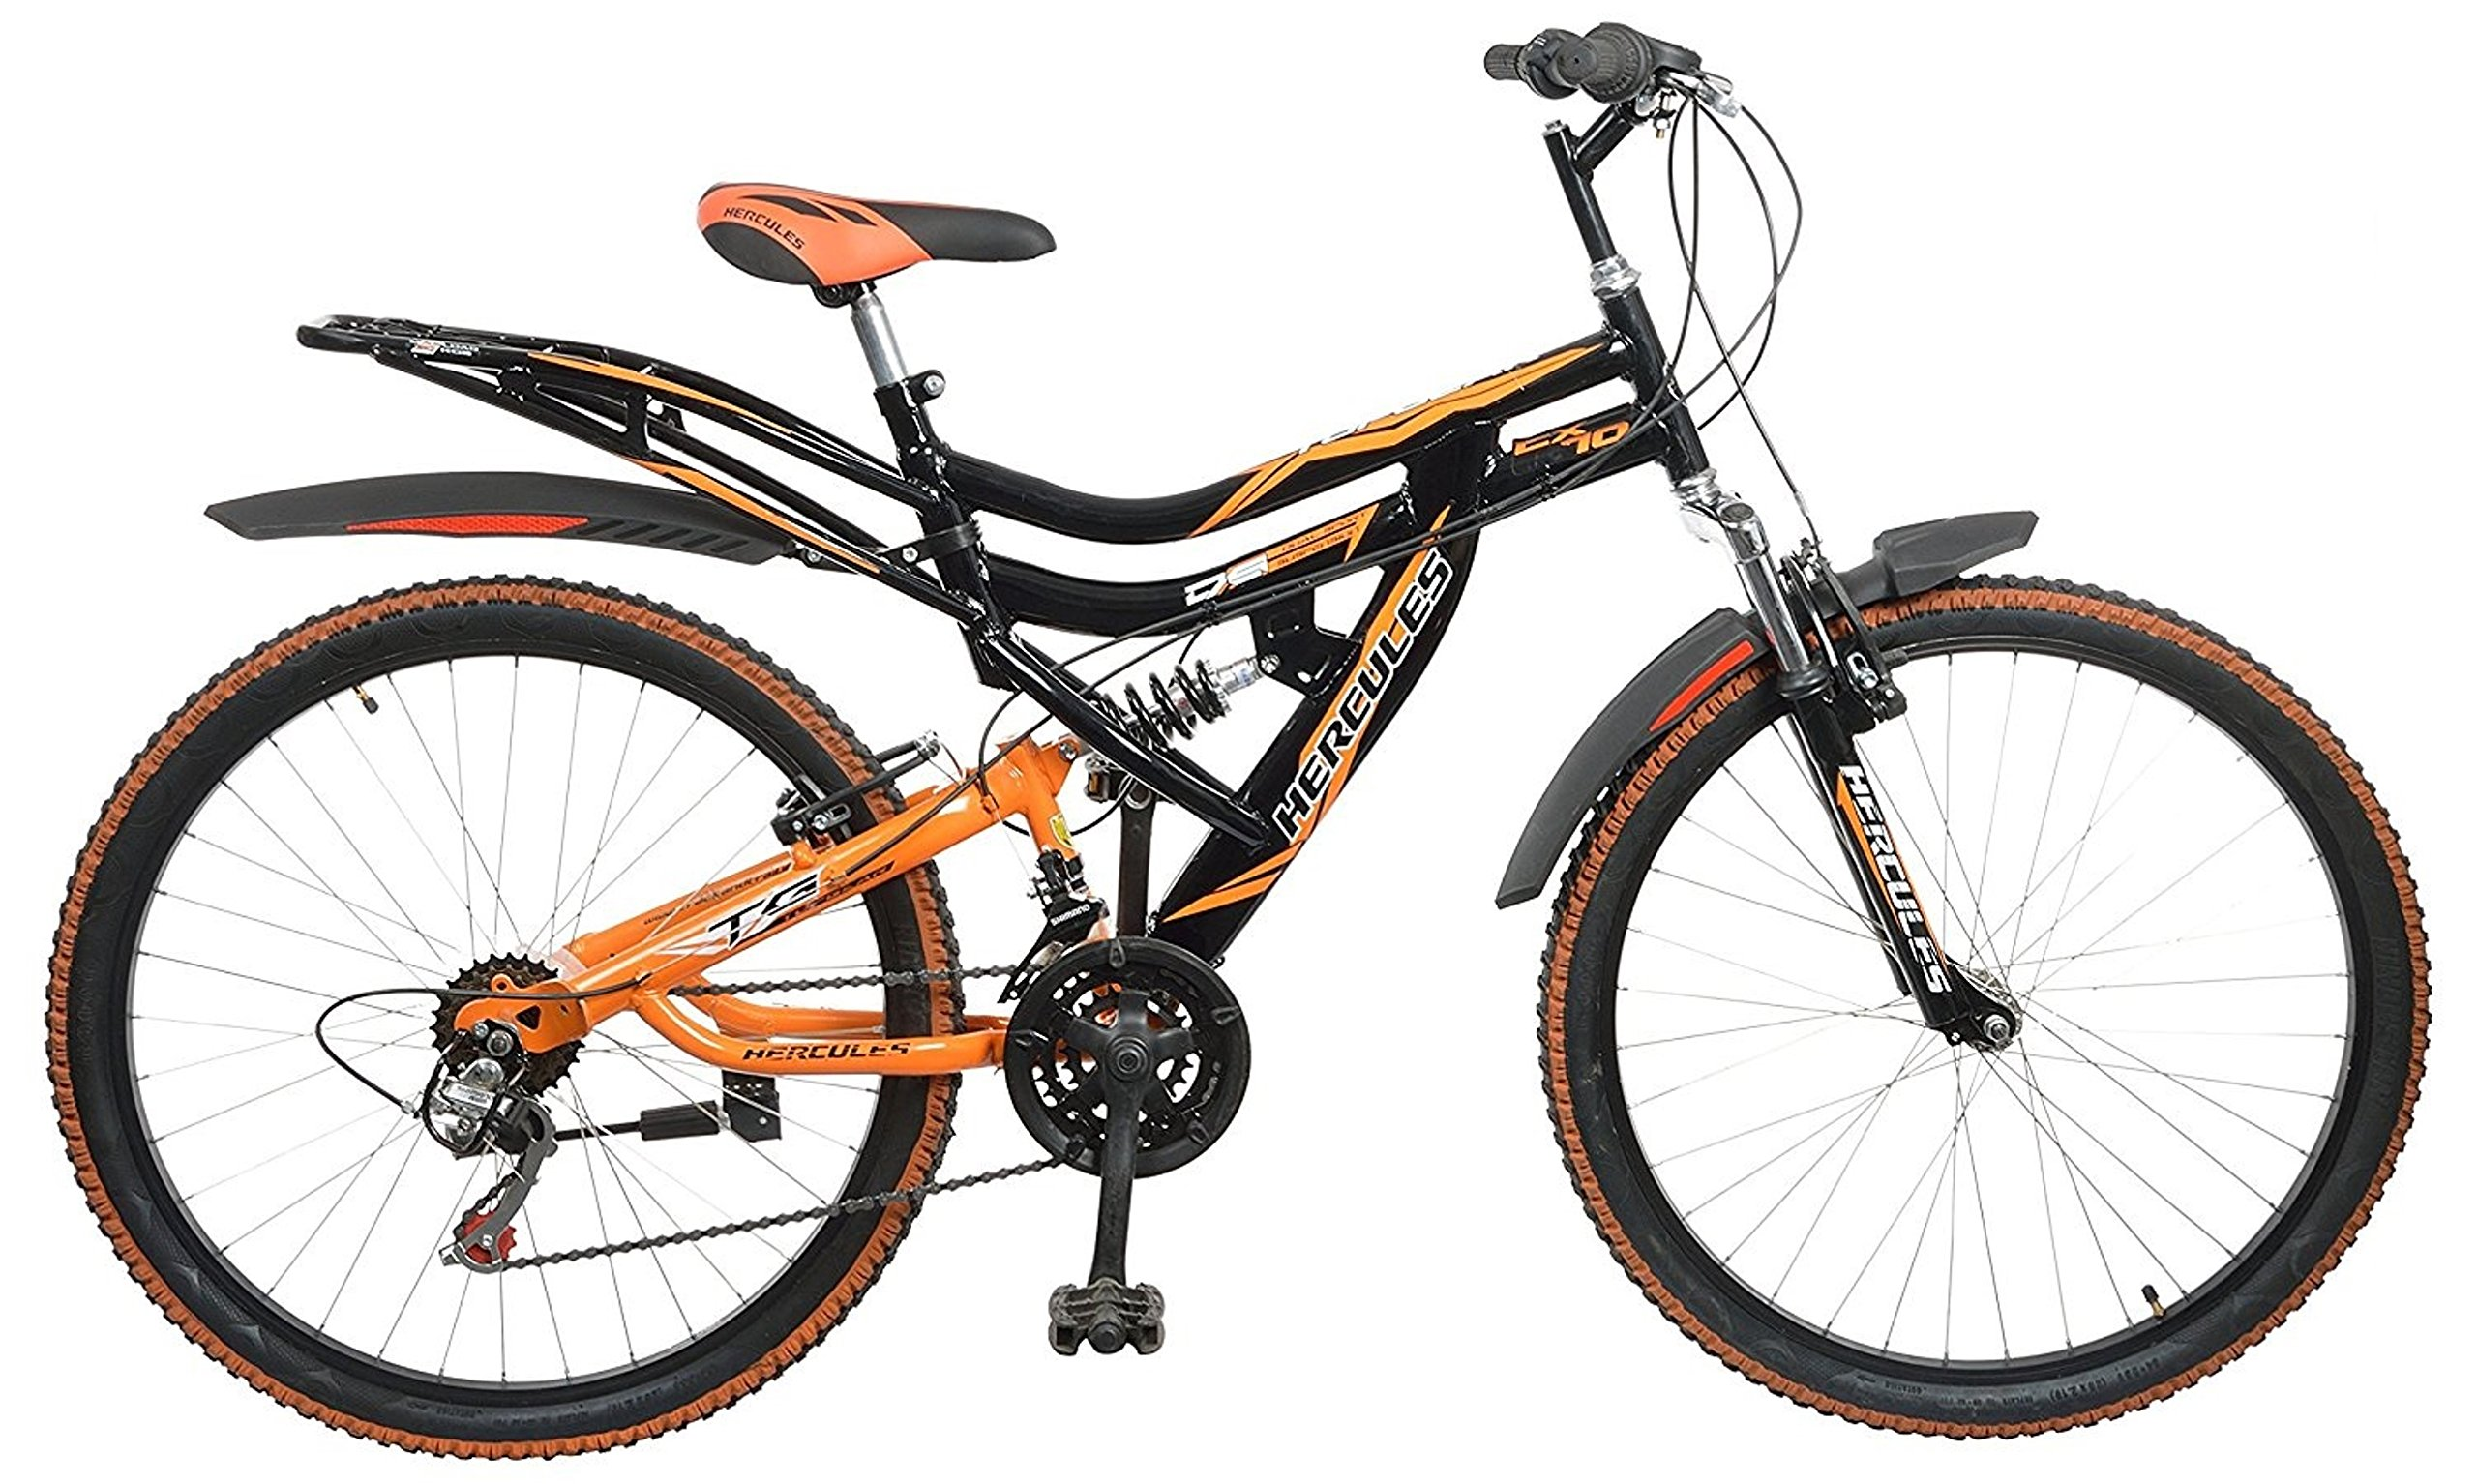 Hercules Topgear CX70 Dual Suspension 18 Speed Bicycle (26T) product image